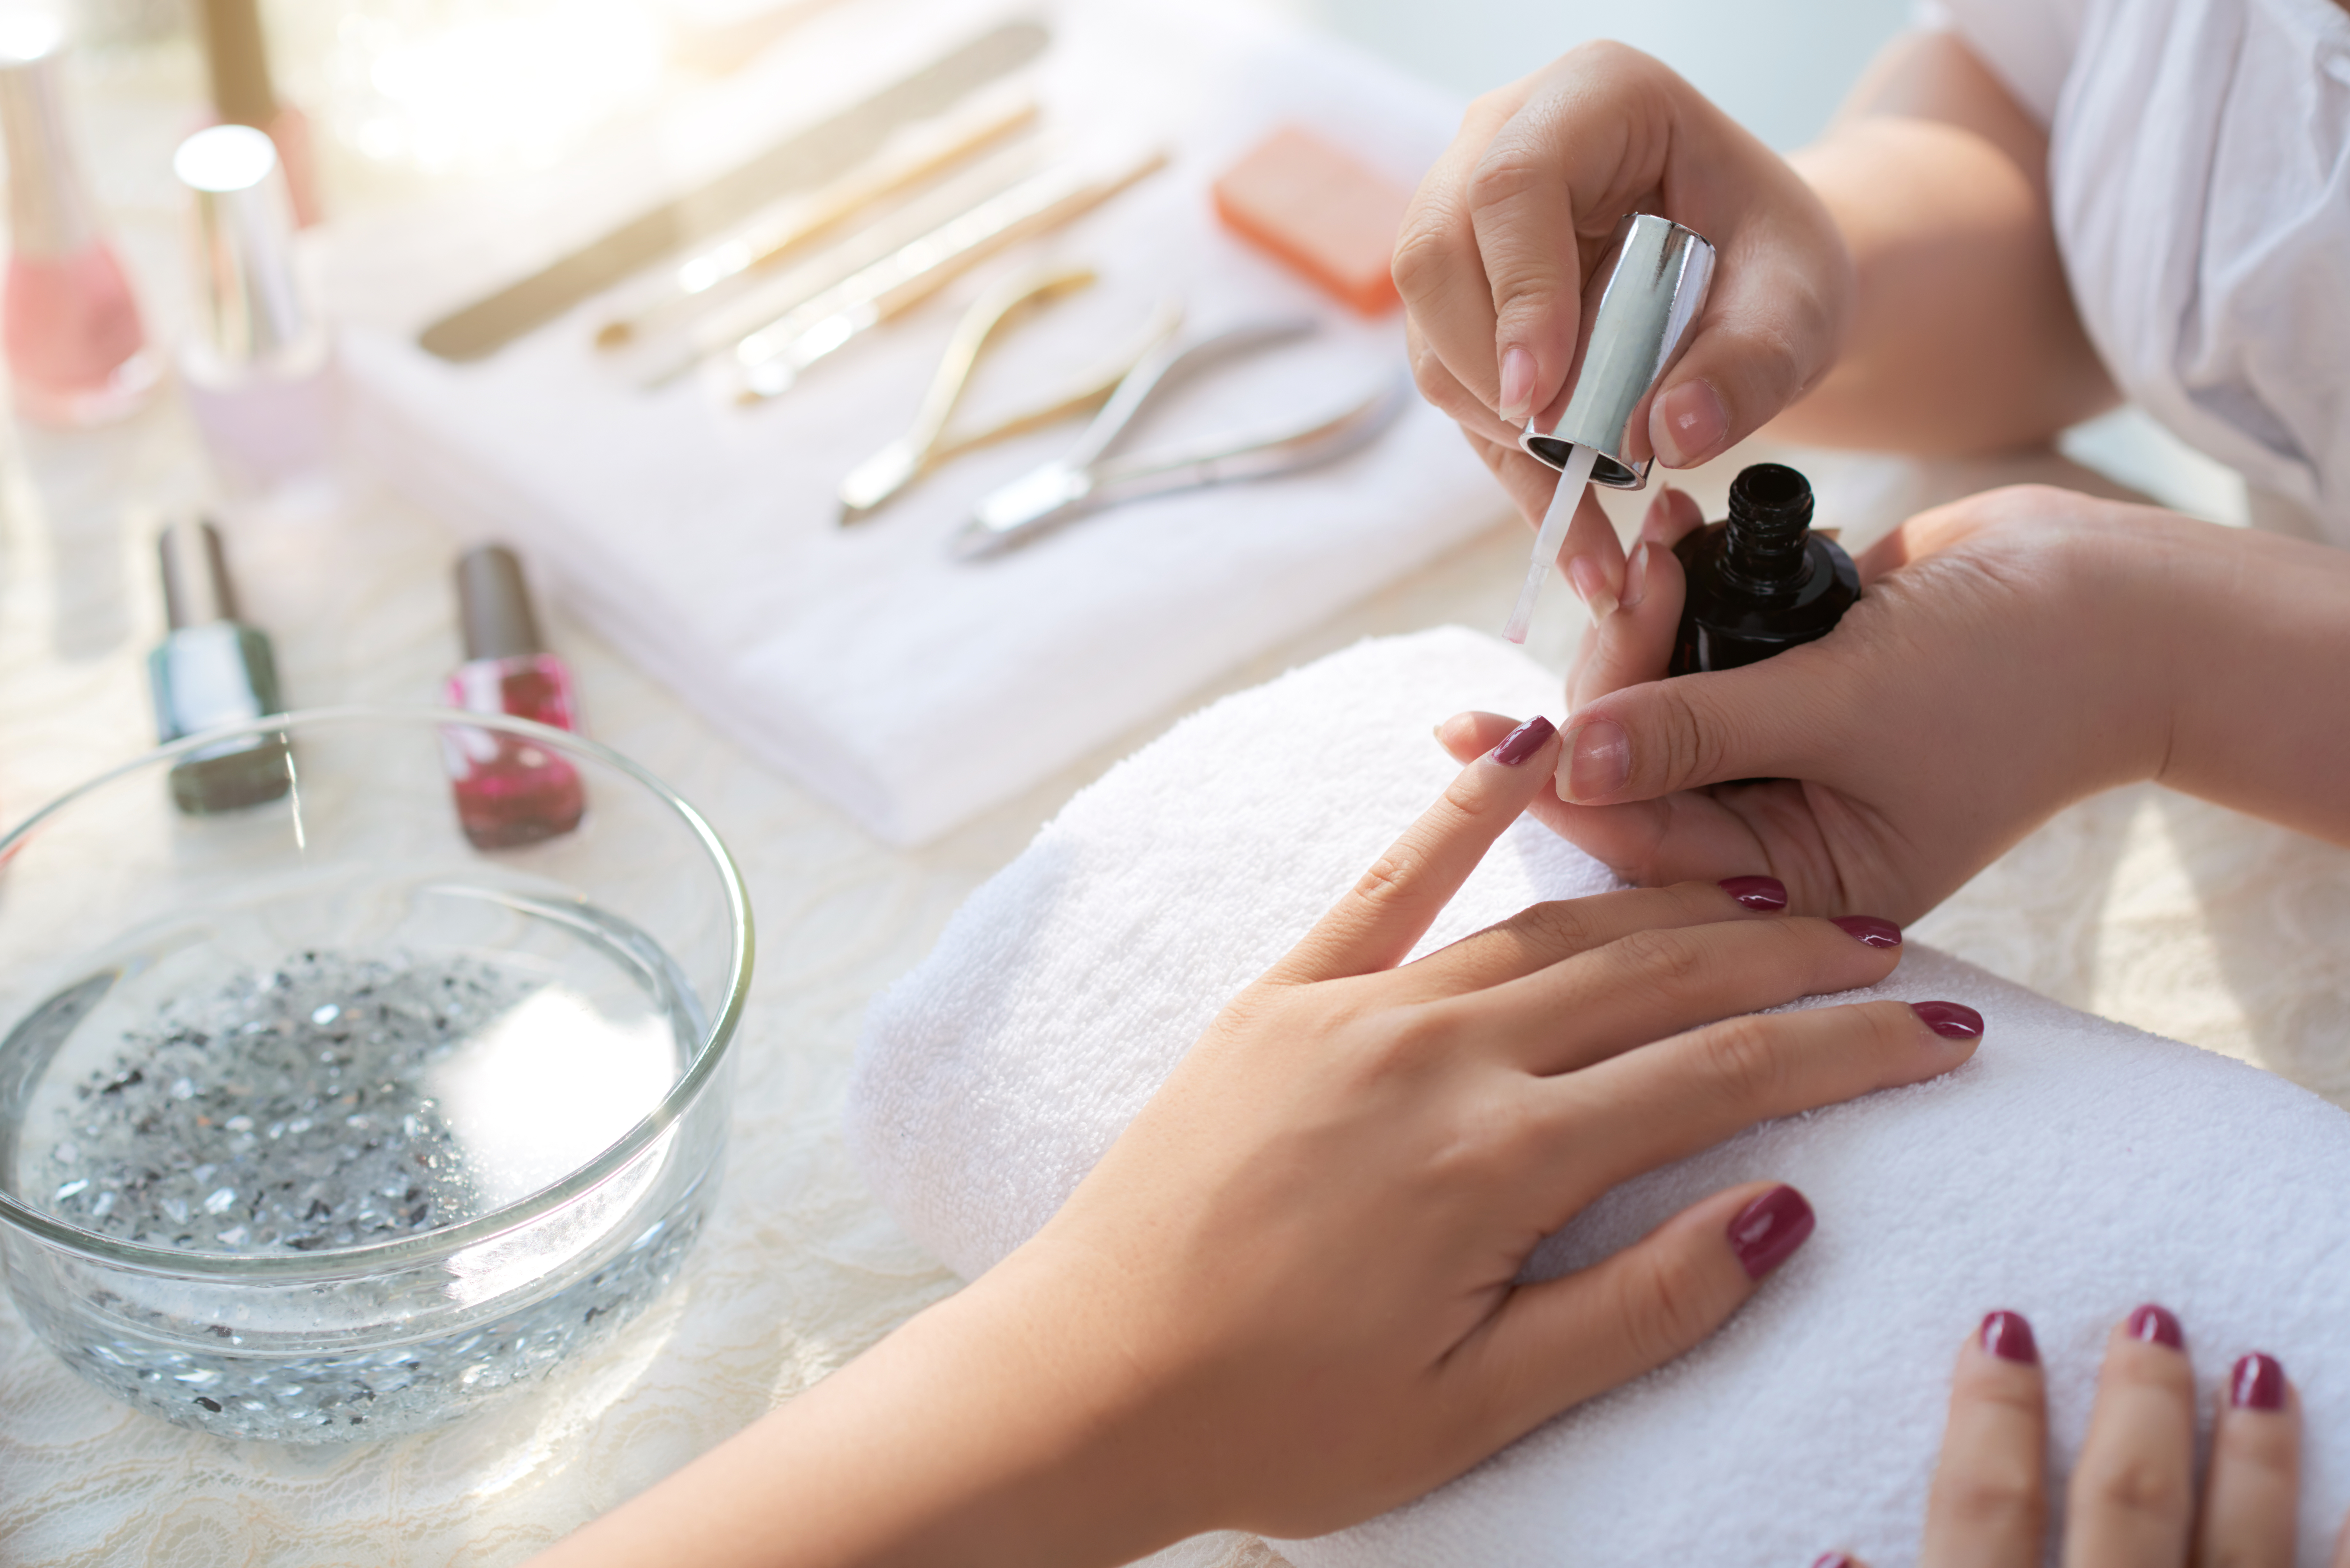 What Is a Medical Esthetician's Salary? | Career Trend